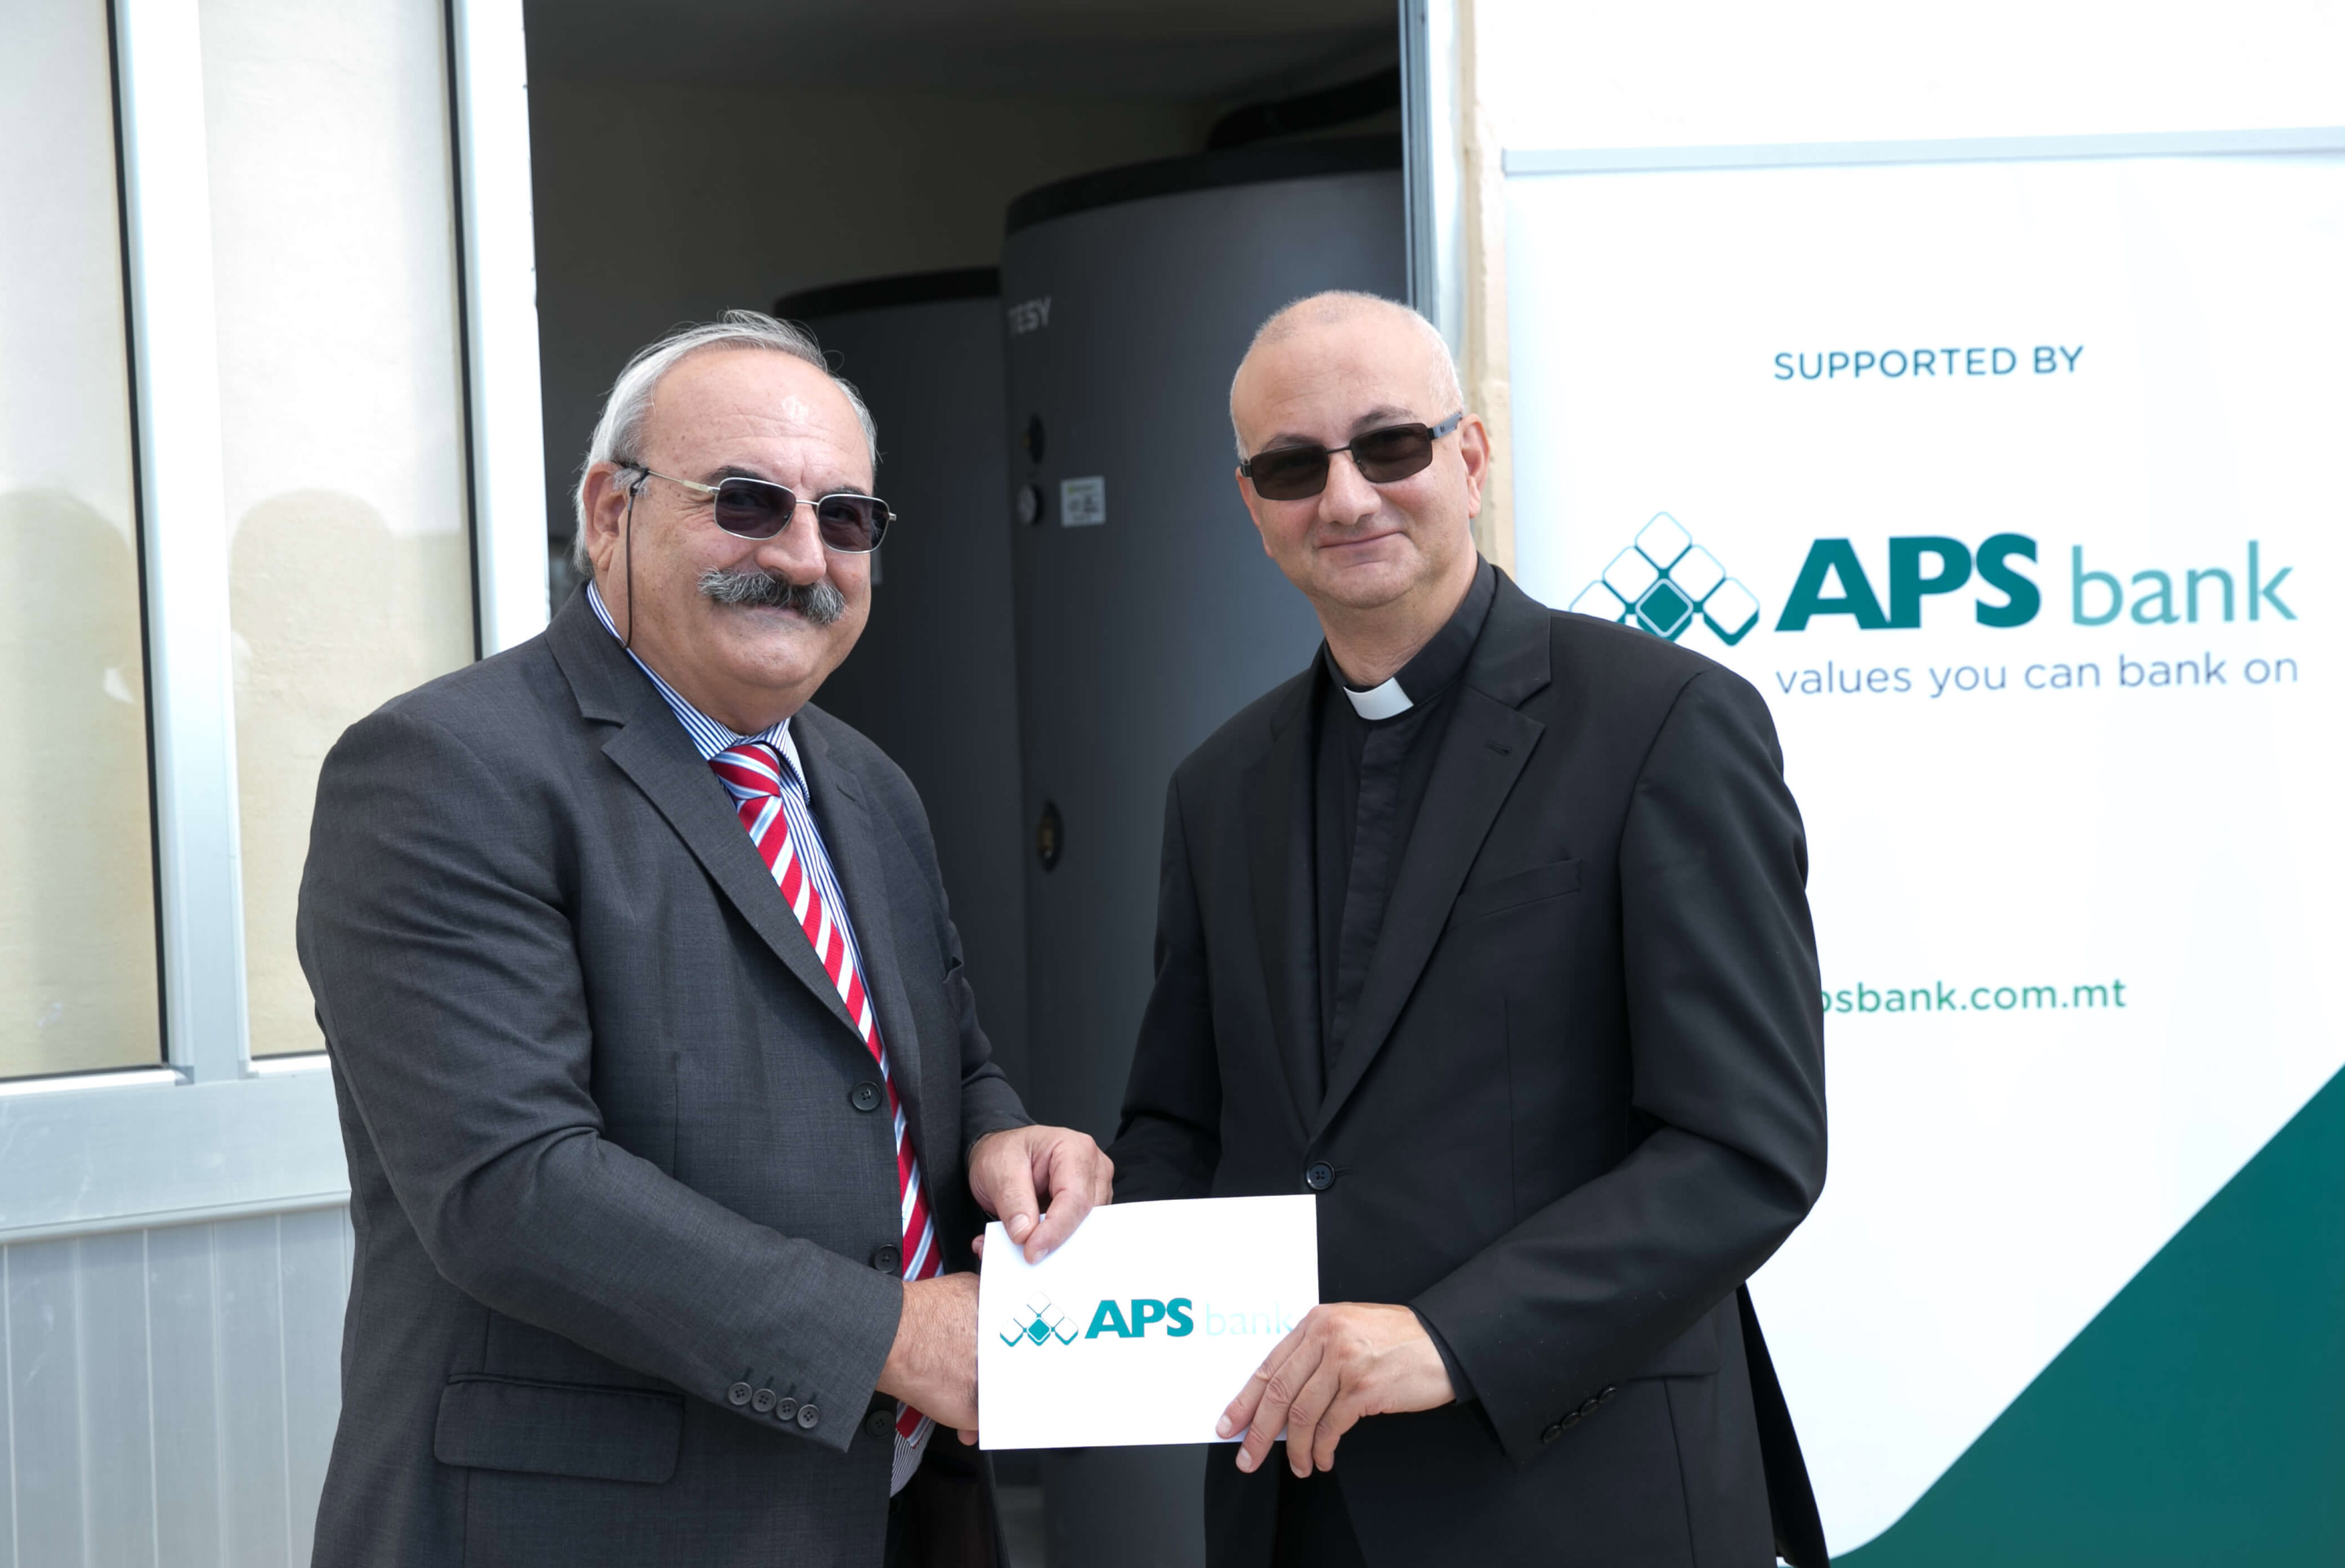 Frederick Mifsud Bonnici (APS Bank Chairmain) presenting the donation to Fr Martin Micallef.